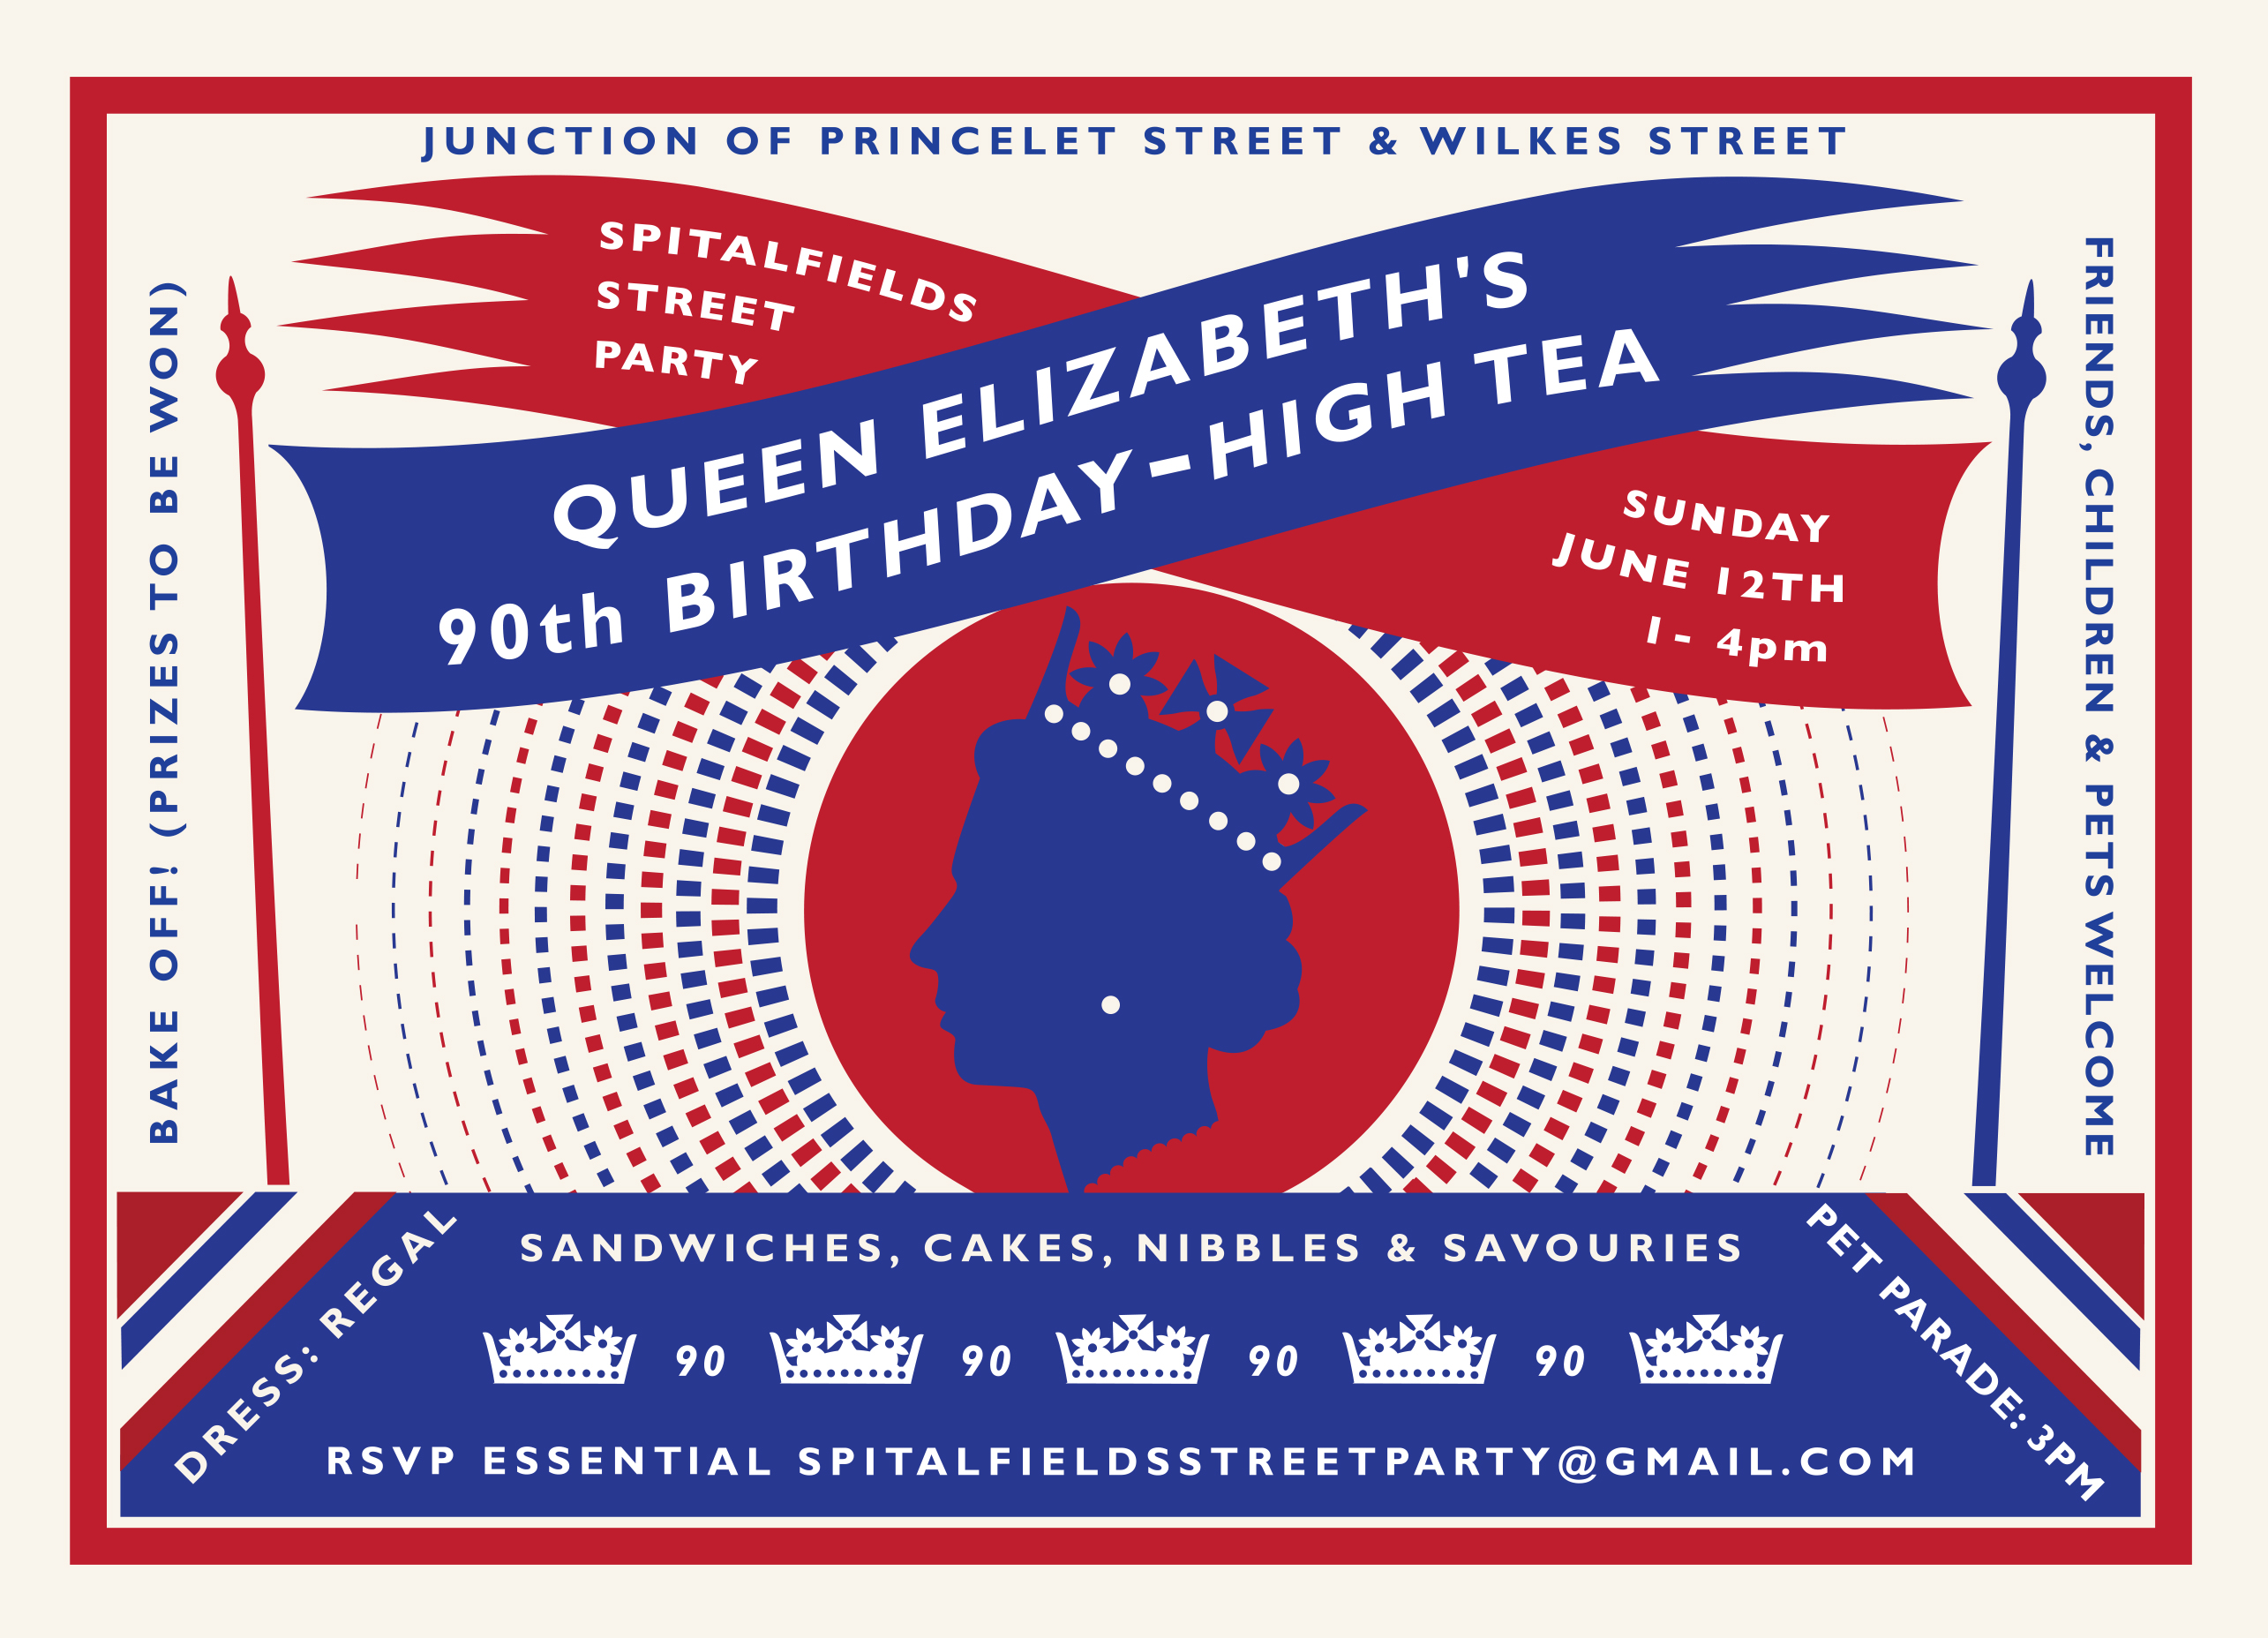 QUEENS-90TH-STREET-PARTY-SPITALFIELDS-INVITE